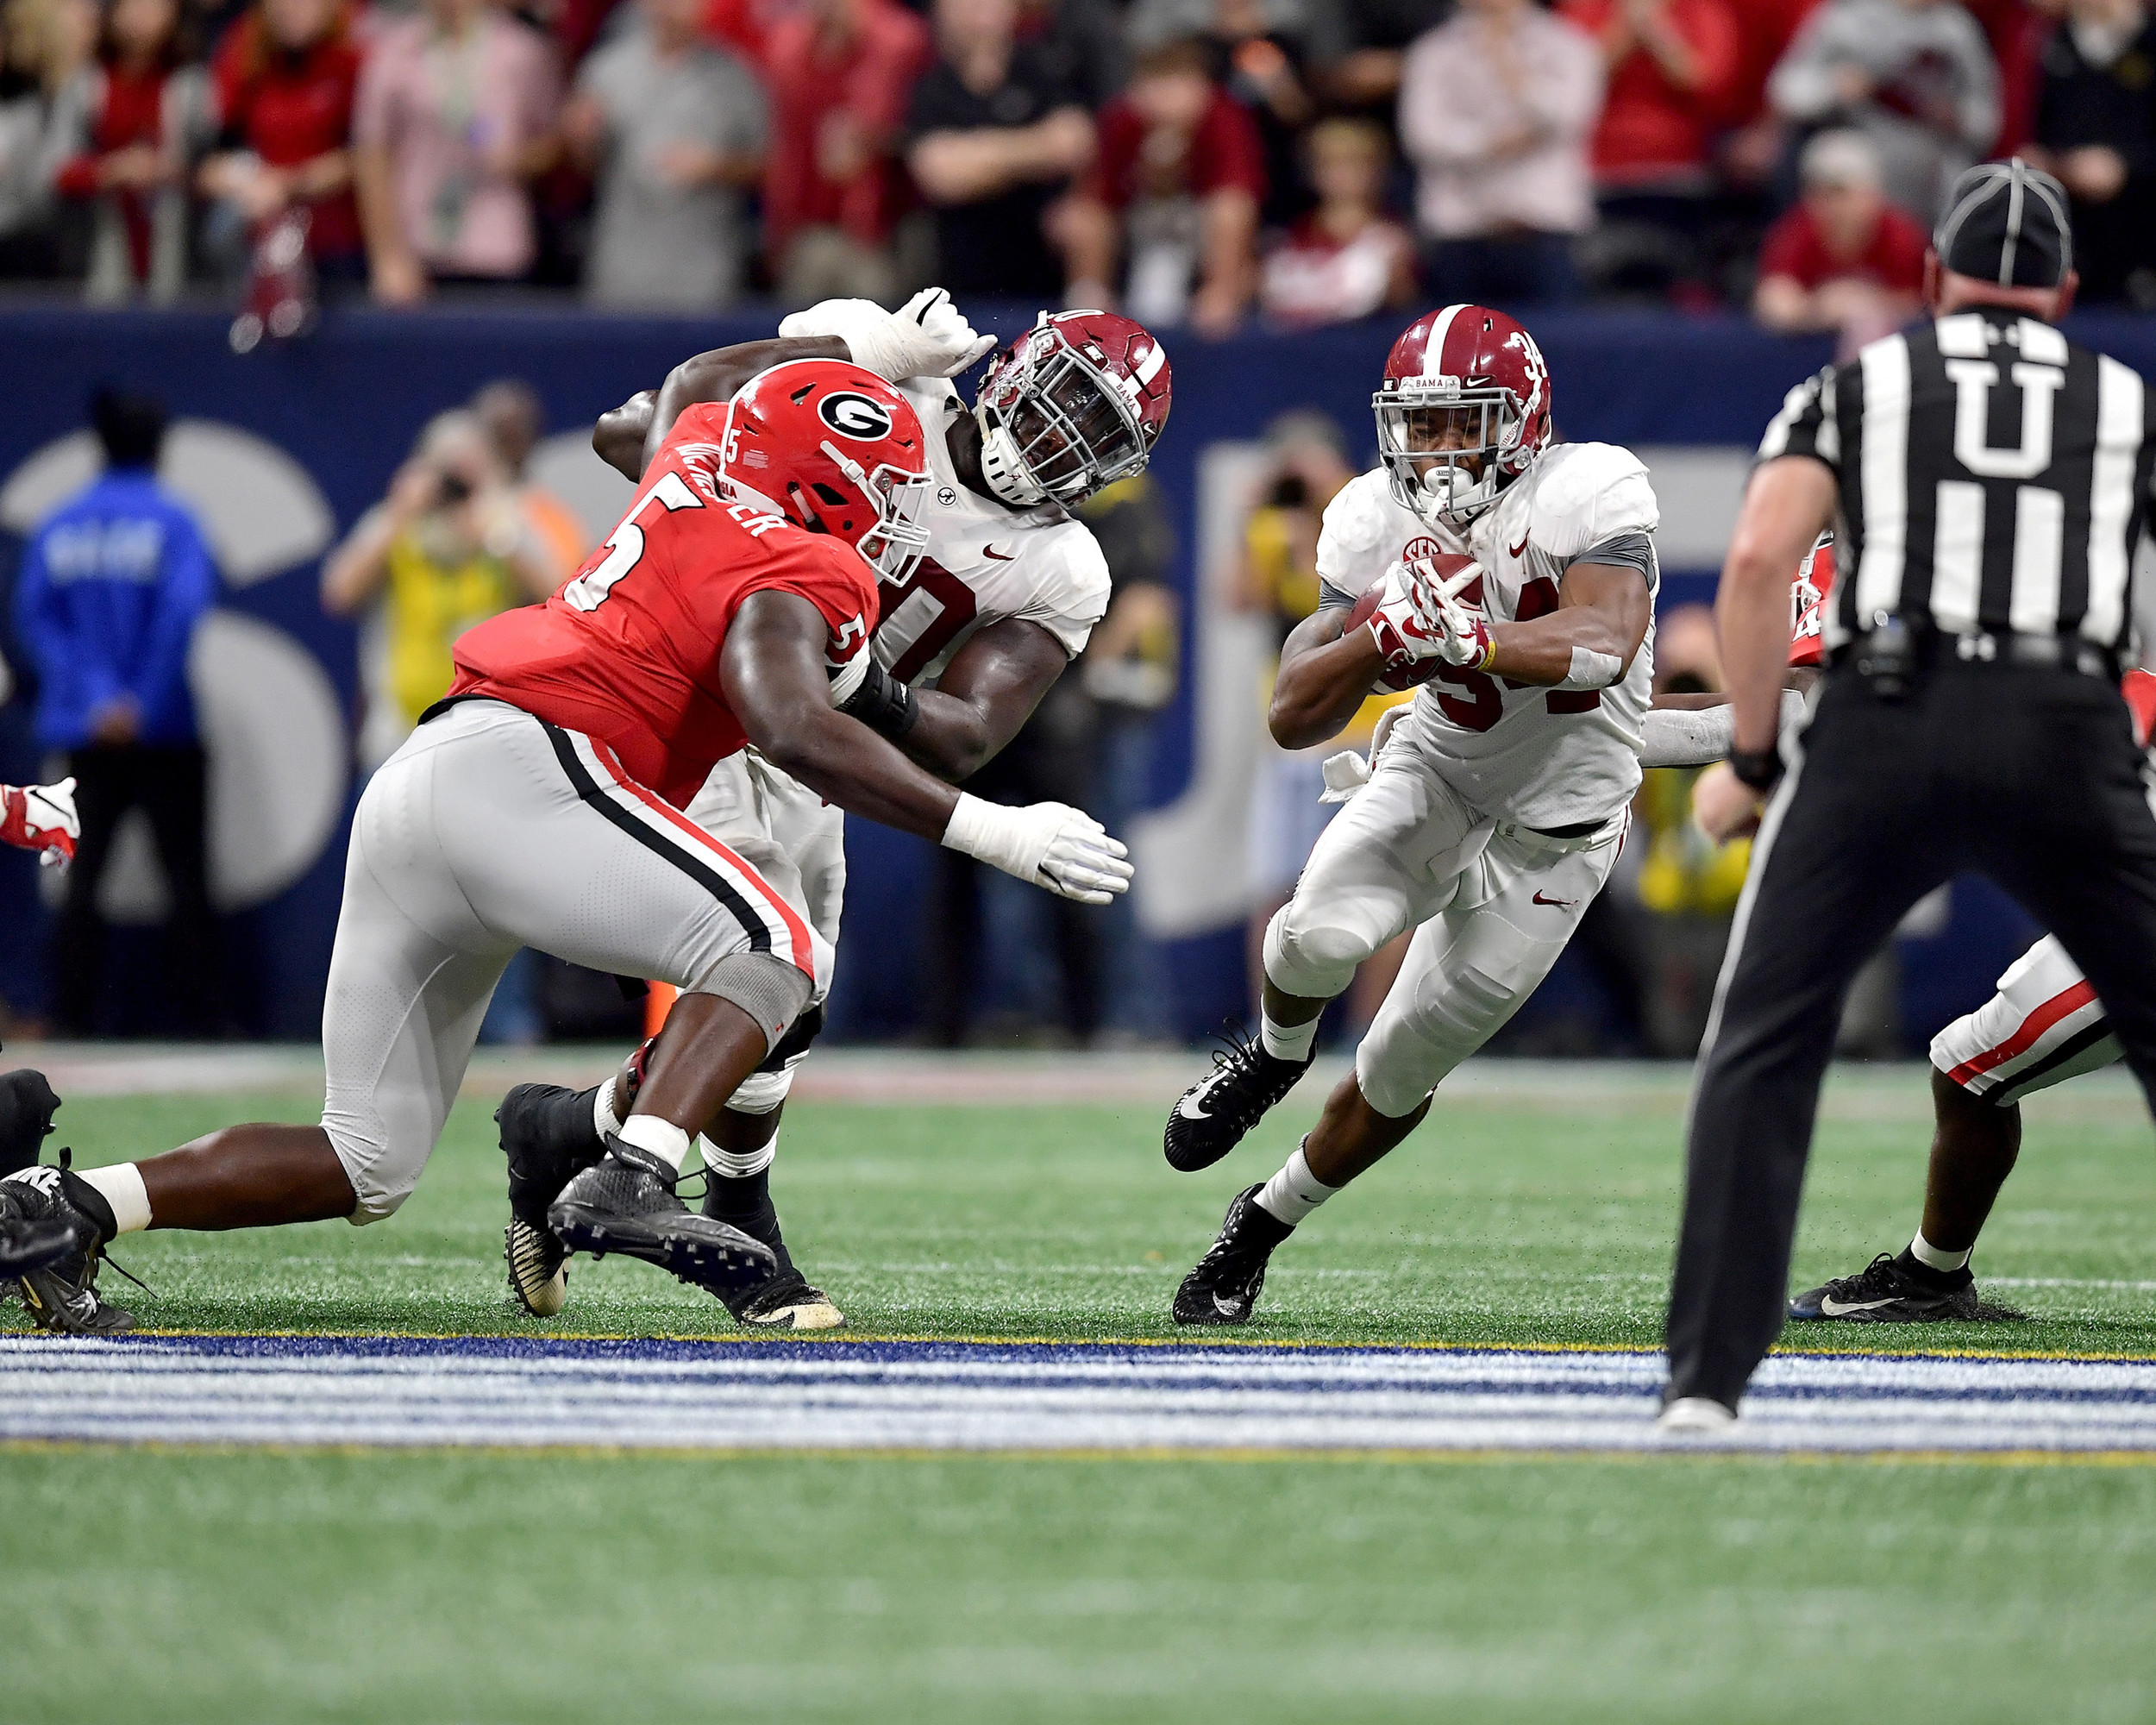 Alabama Crimson Tide running back Damien Harris (34) runs up the middle during the fourth quarter of the 2018 SEC Championship football game against the Georgia Bulldogs at Mercedes-Benz Stadium in Atlanta, Ga., on Dec. 1, 2018. Alabama wins 35-28. (Photo by Lee Walls)